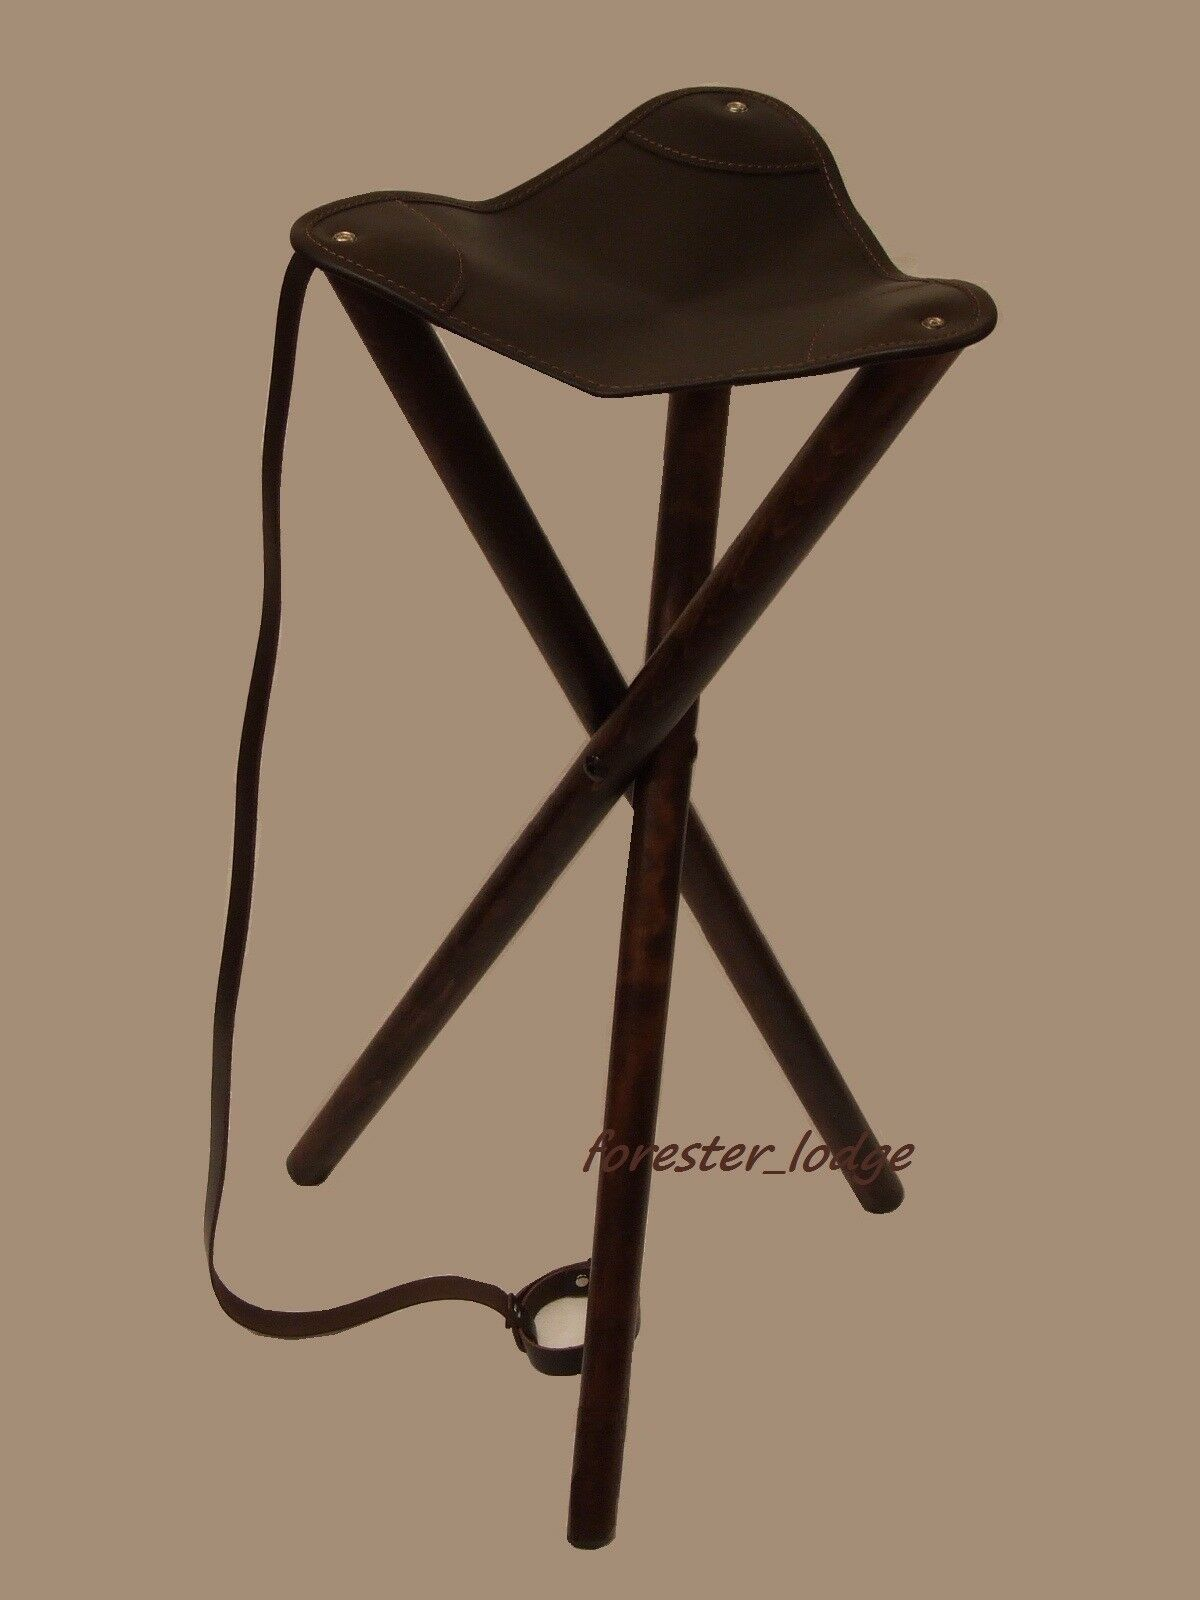 WOODEN FOLDING TRIPOD Stool Chair Leather Seat, camping, fishing ...